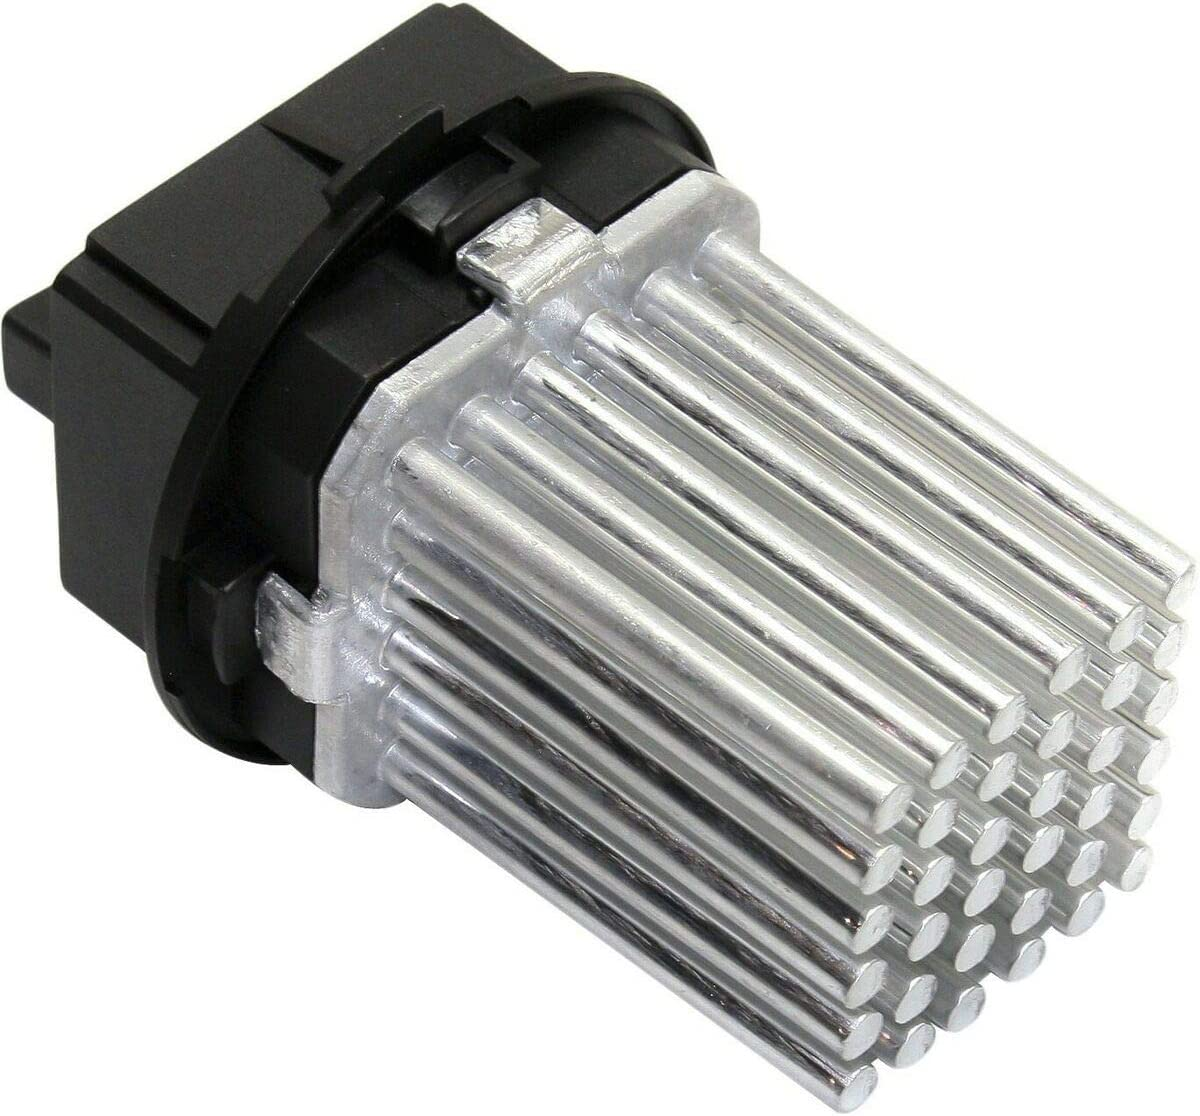 New Replacement for OE Blower Motor Resistor fits Mercedes E Class C fits Mercedes Benz C230 E350 C300 C350